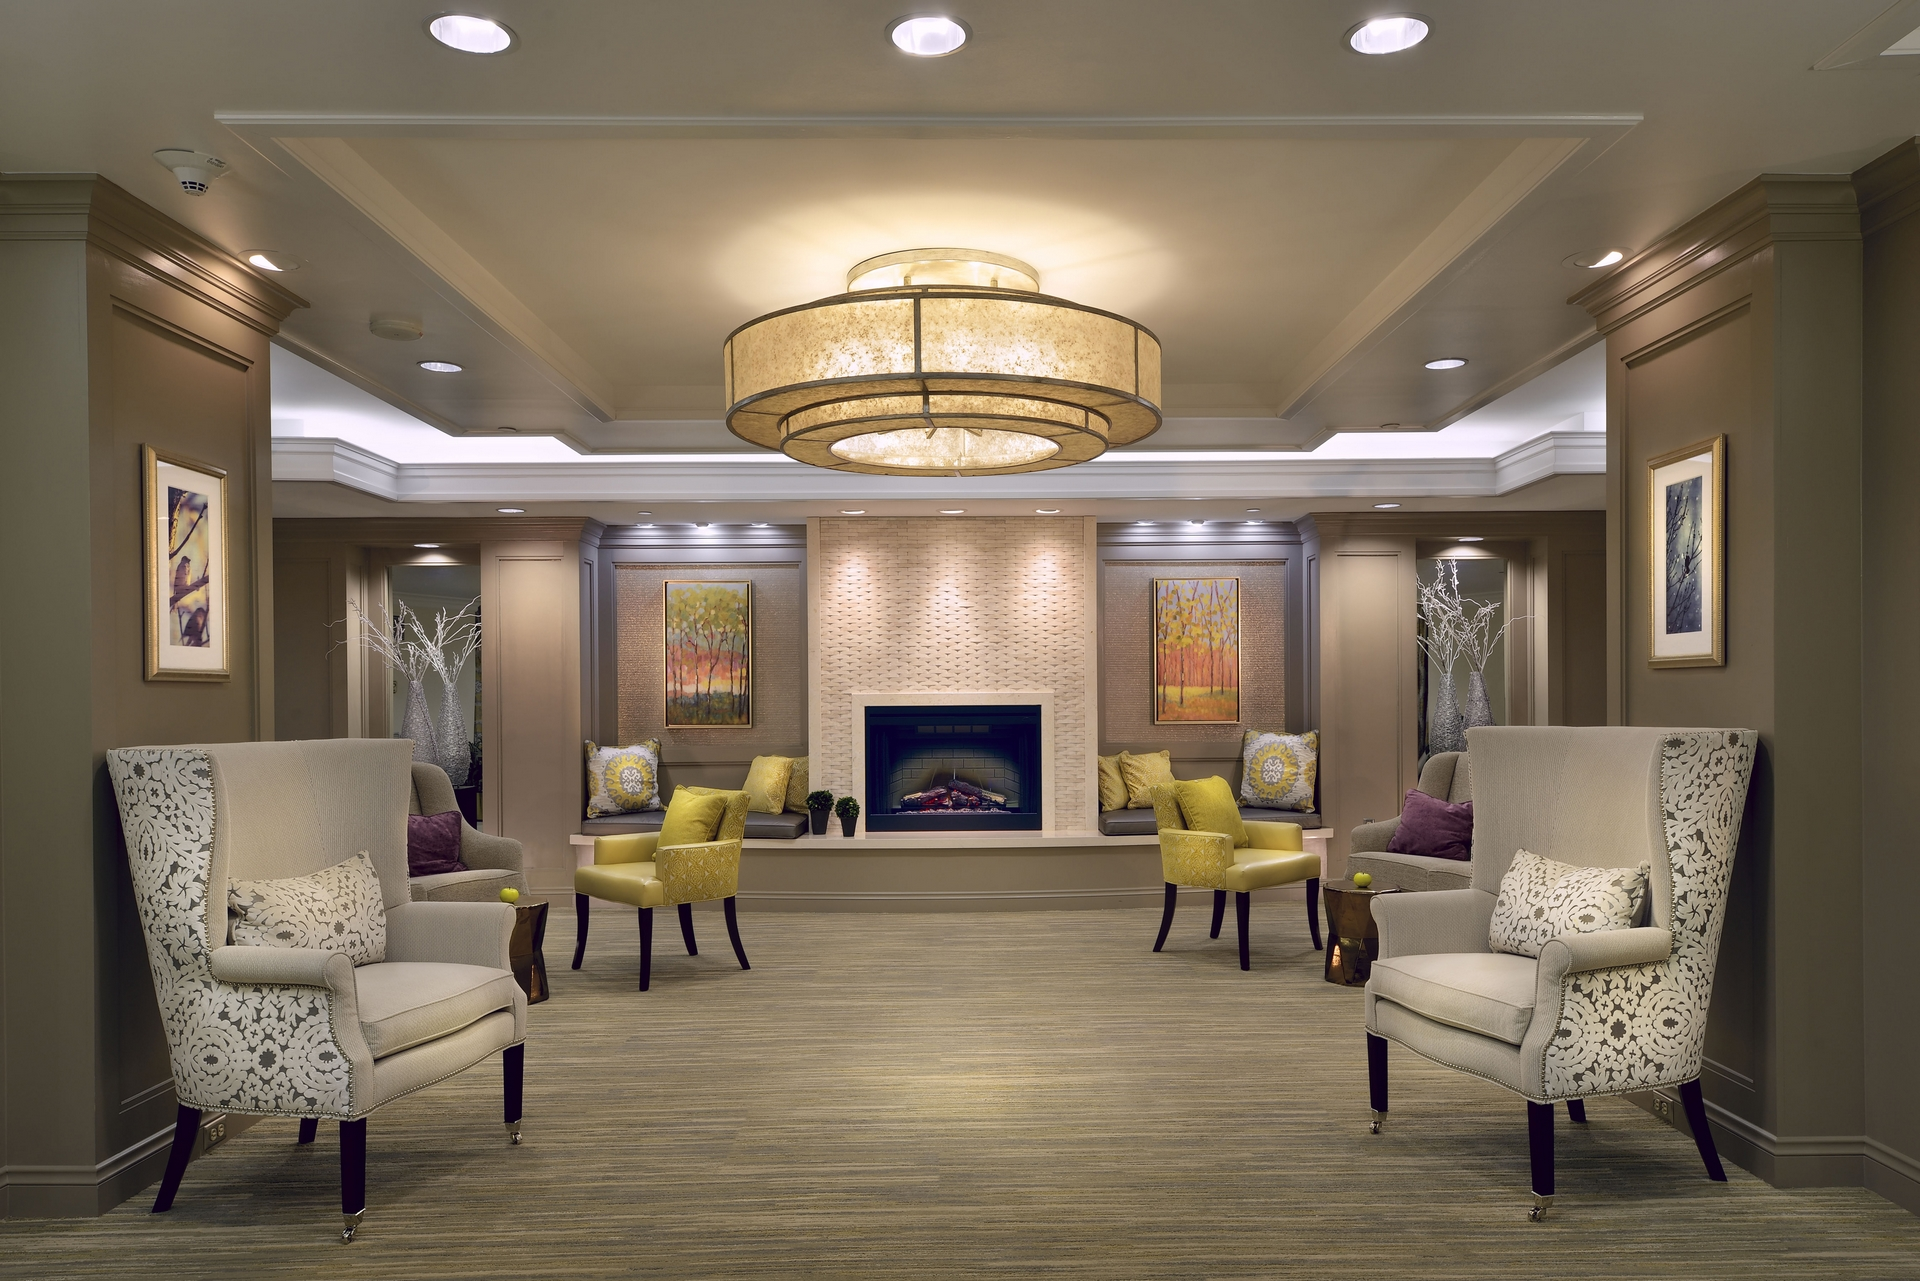 Our Goal Was To Repurpose The Lobby A Desirable Living Room Experience Ready For Small Family Gatherings Or Large Social Events